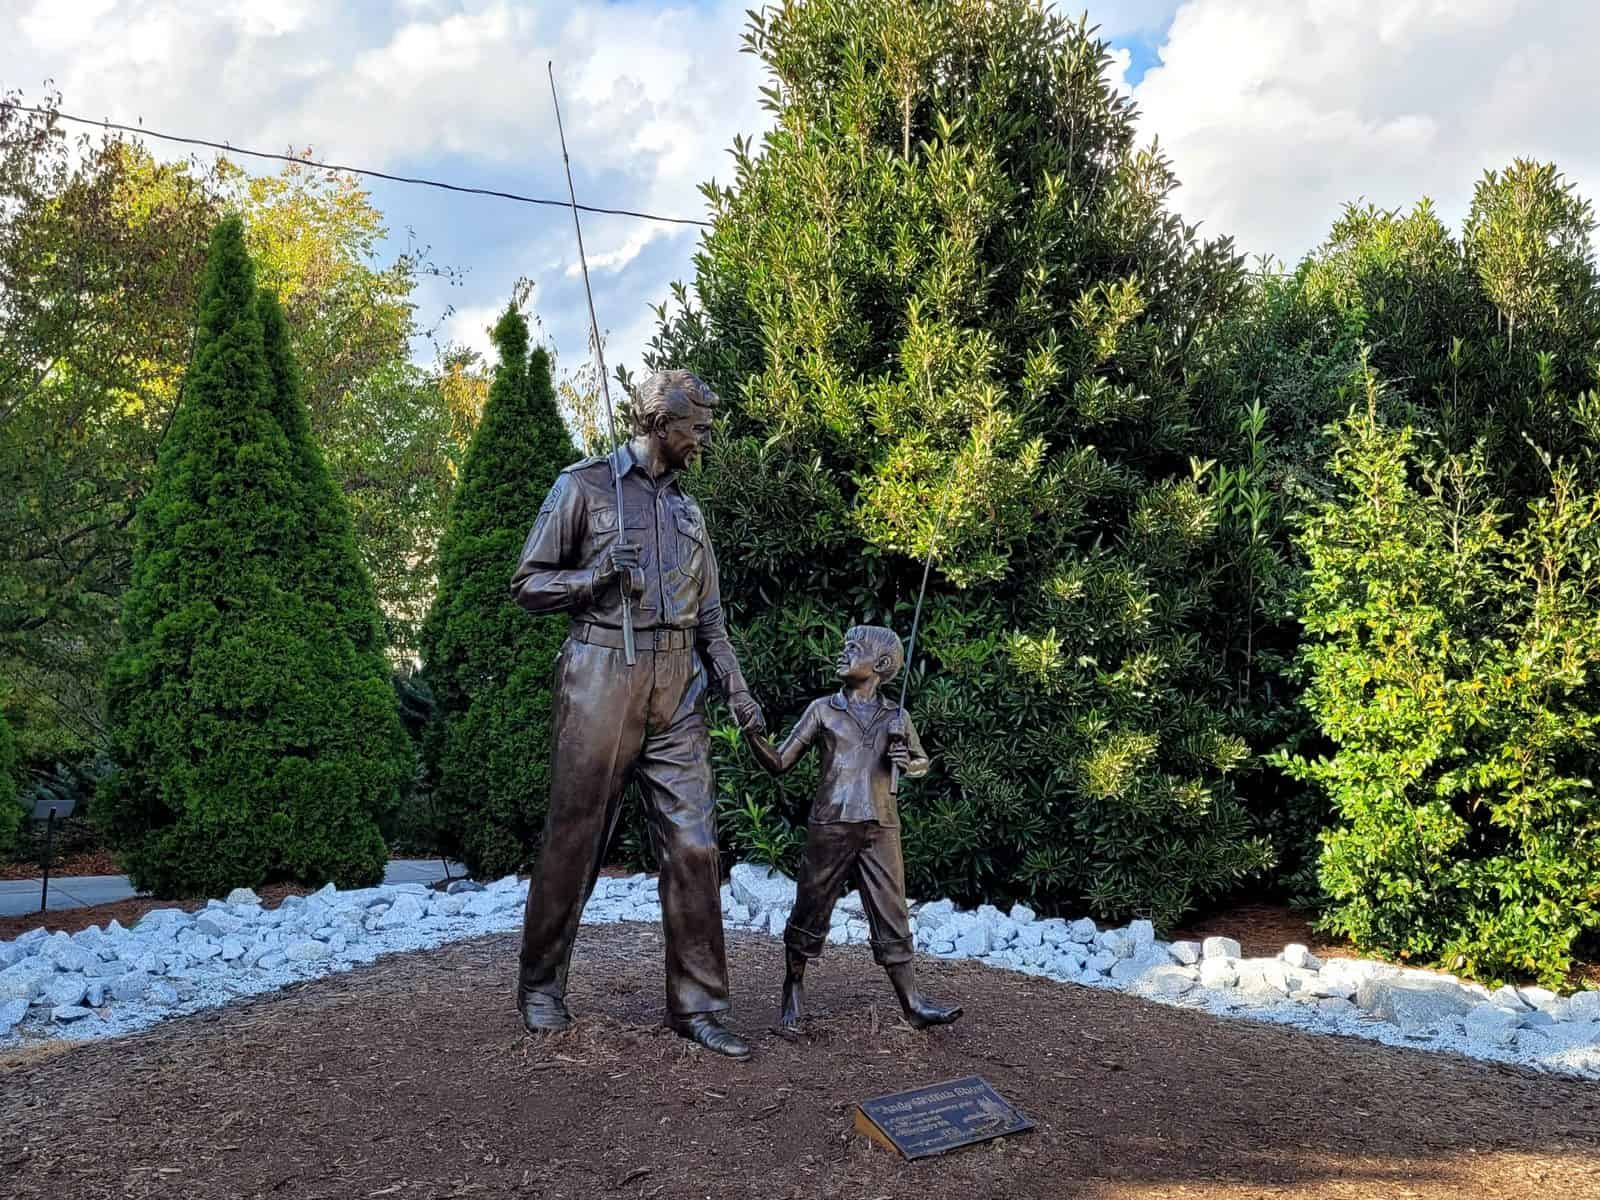 tvland andy and opie statue in mount airy nc